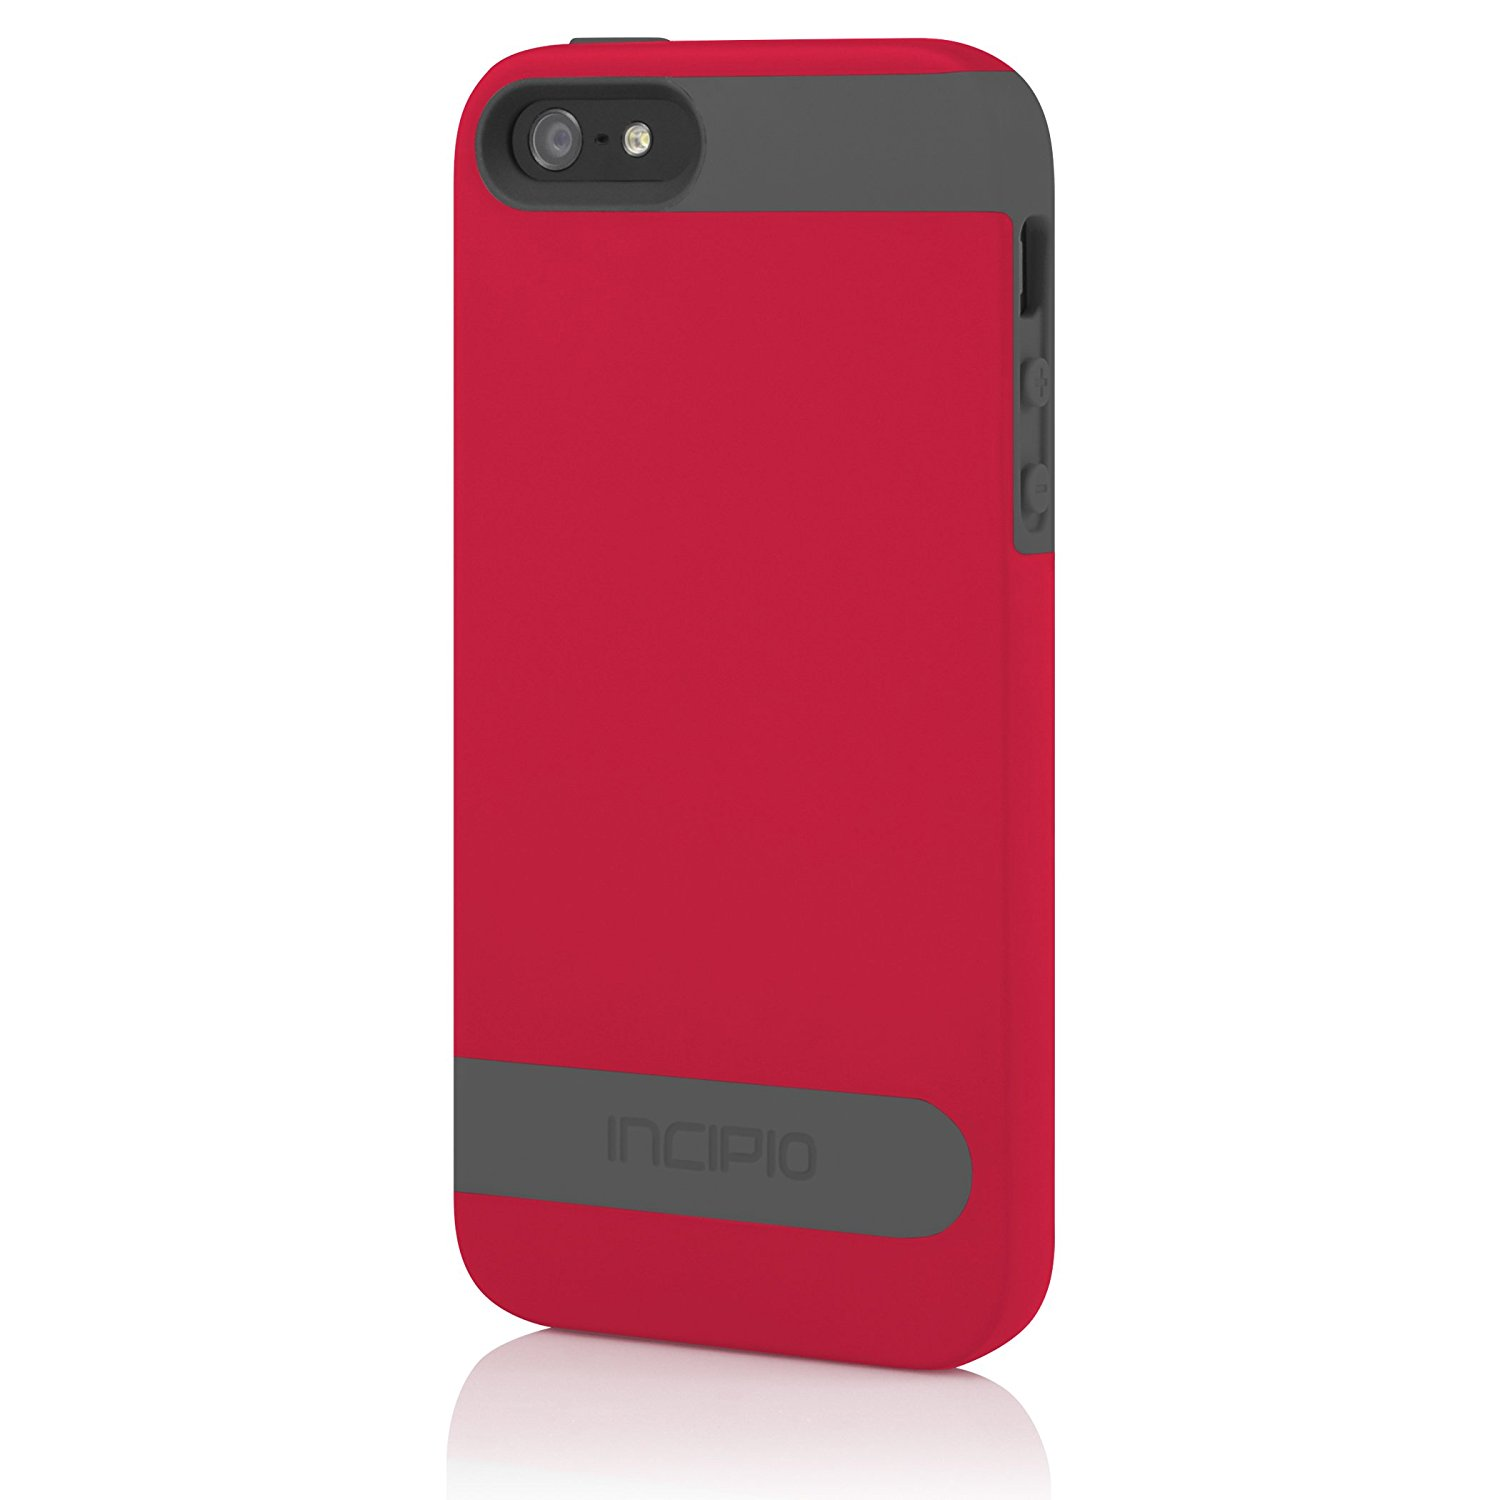 Incipio Ovrmld Case For Iphone Se 5c 5s 5 Red Gray Iph 1120 5se Kickstand Series Blackblack